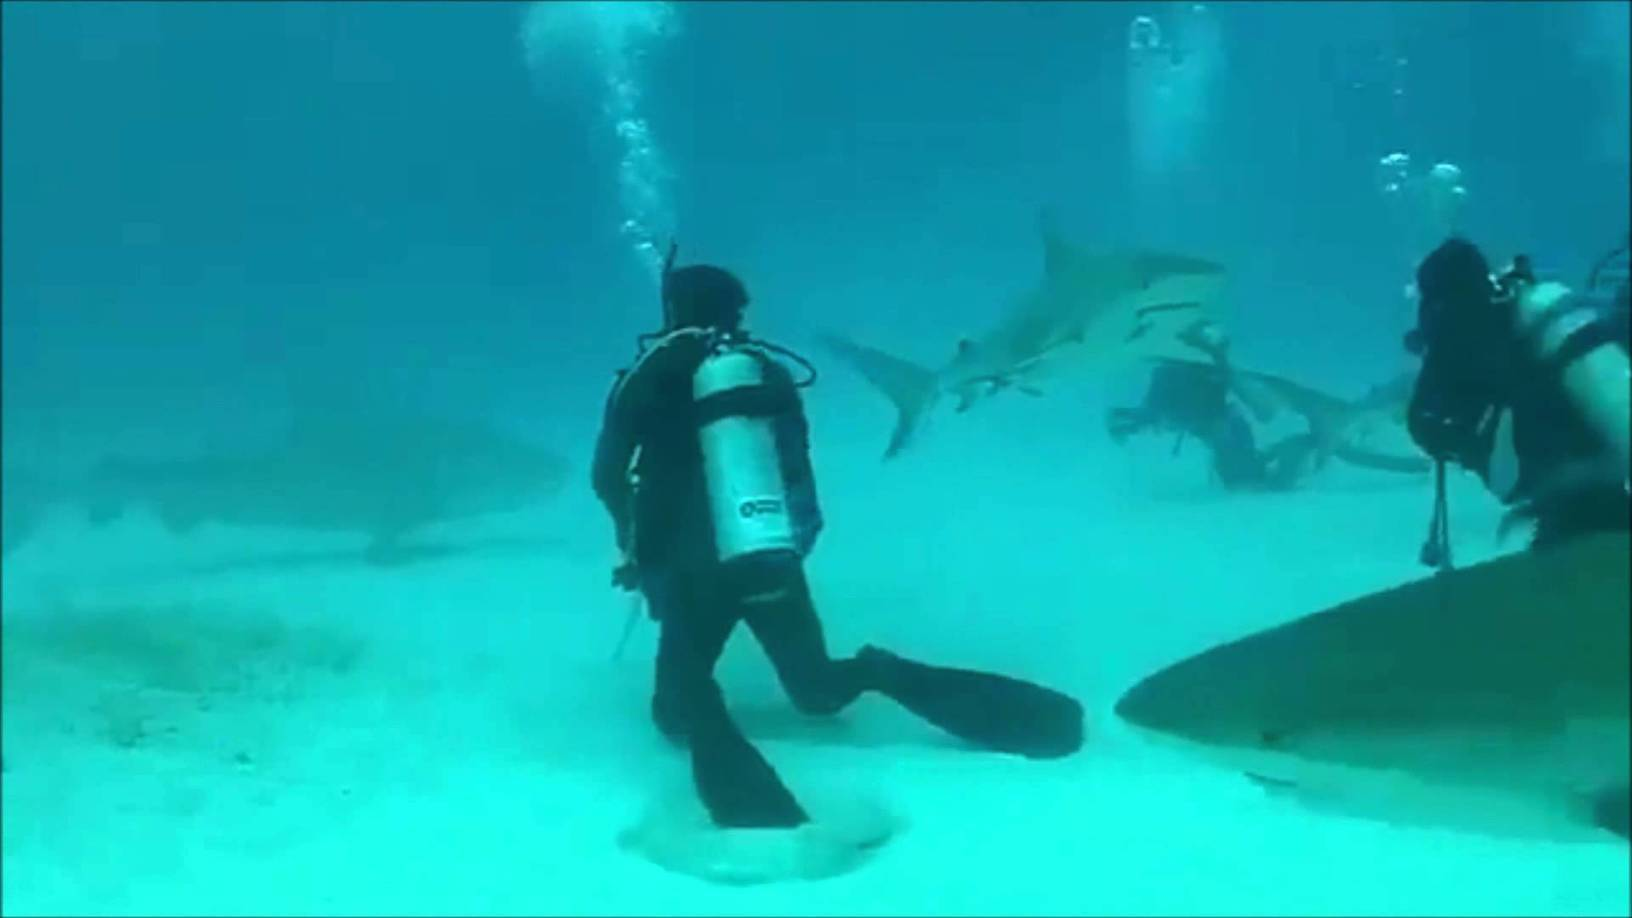 Shark Attack Scuba Diver Caught On Video Yout